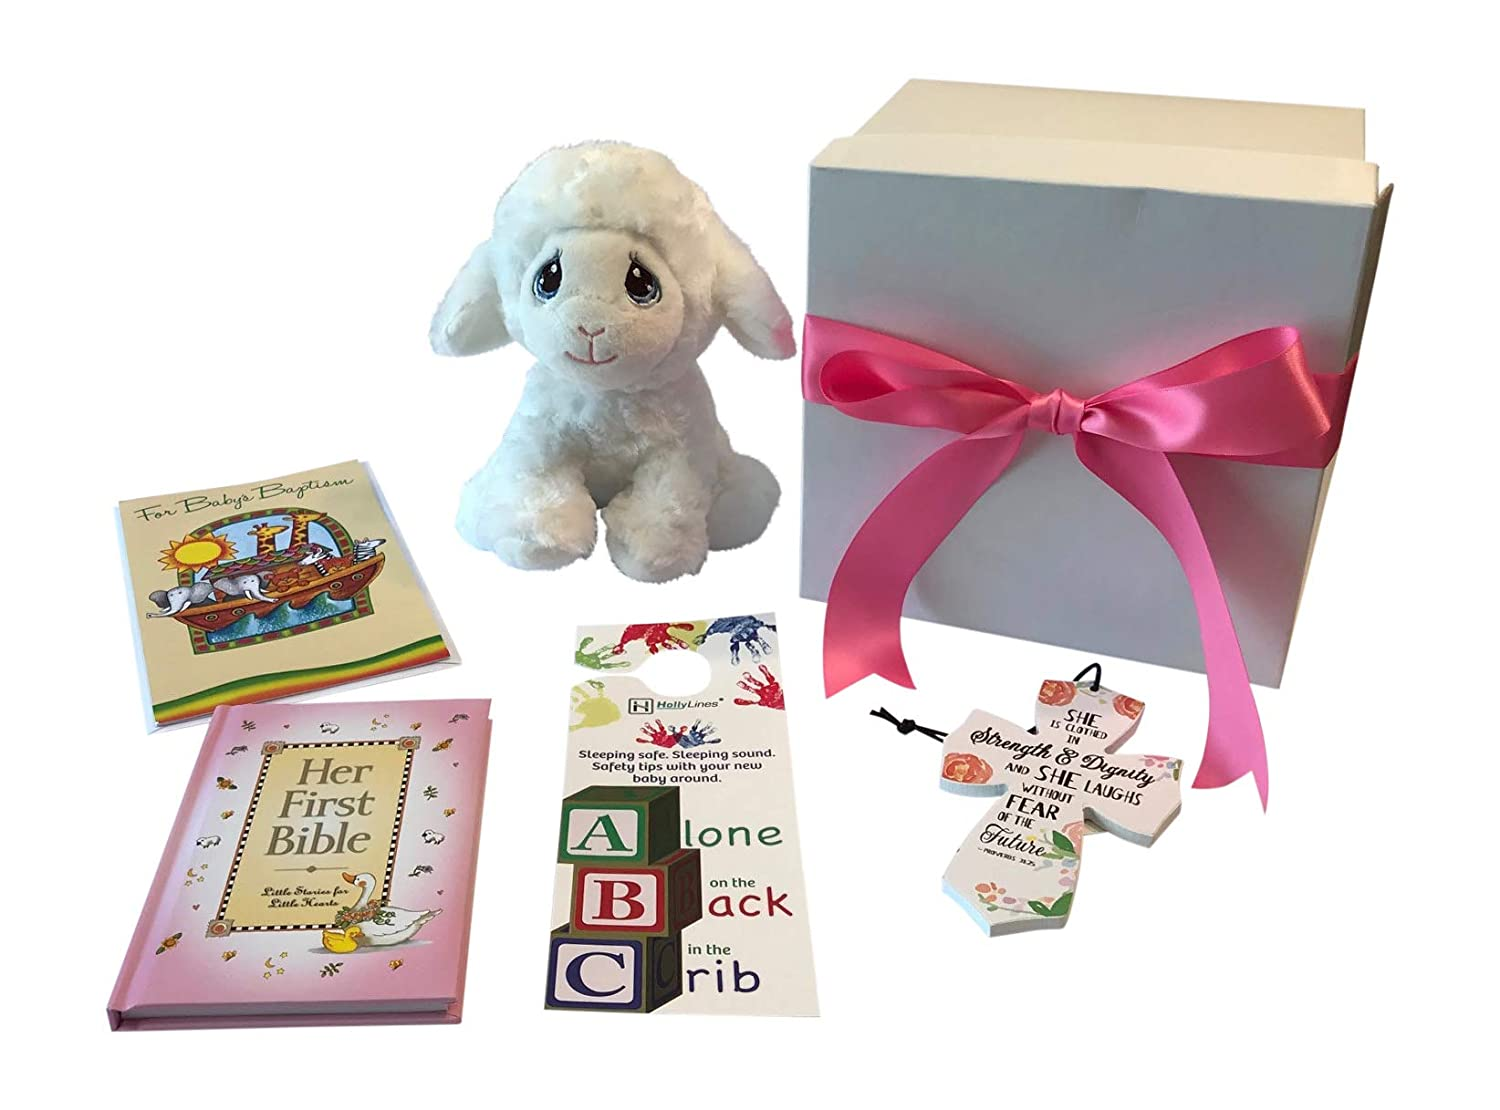 Bible Cross Card Baptism Gift Set for Baby Girl with Aurora Lamb